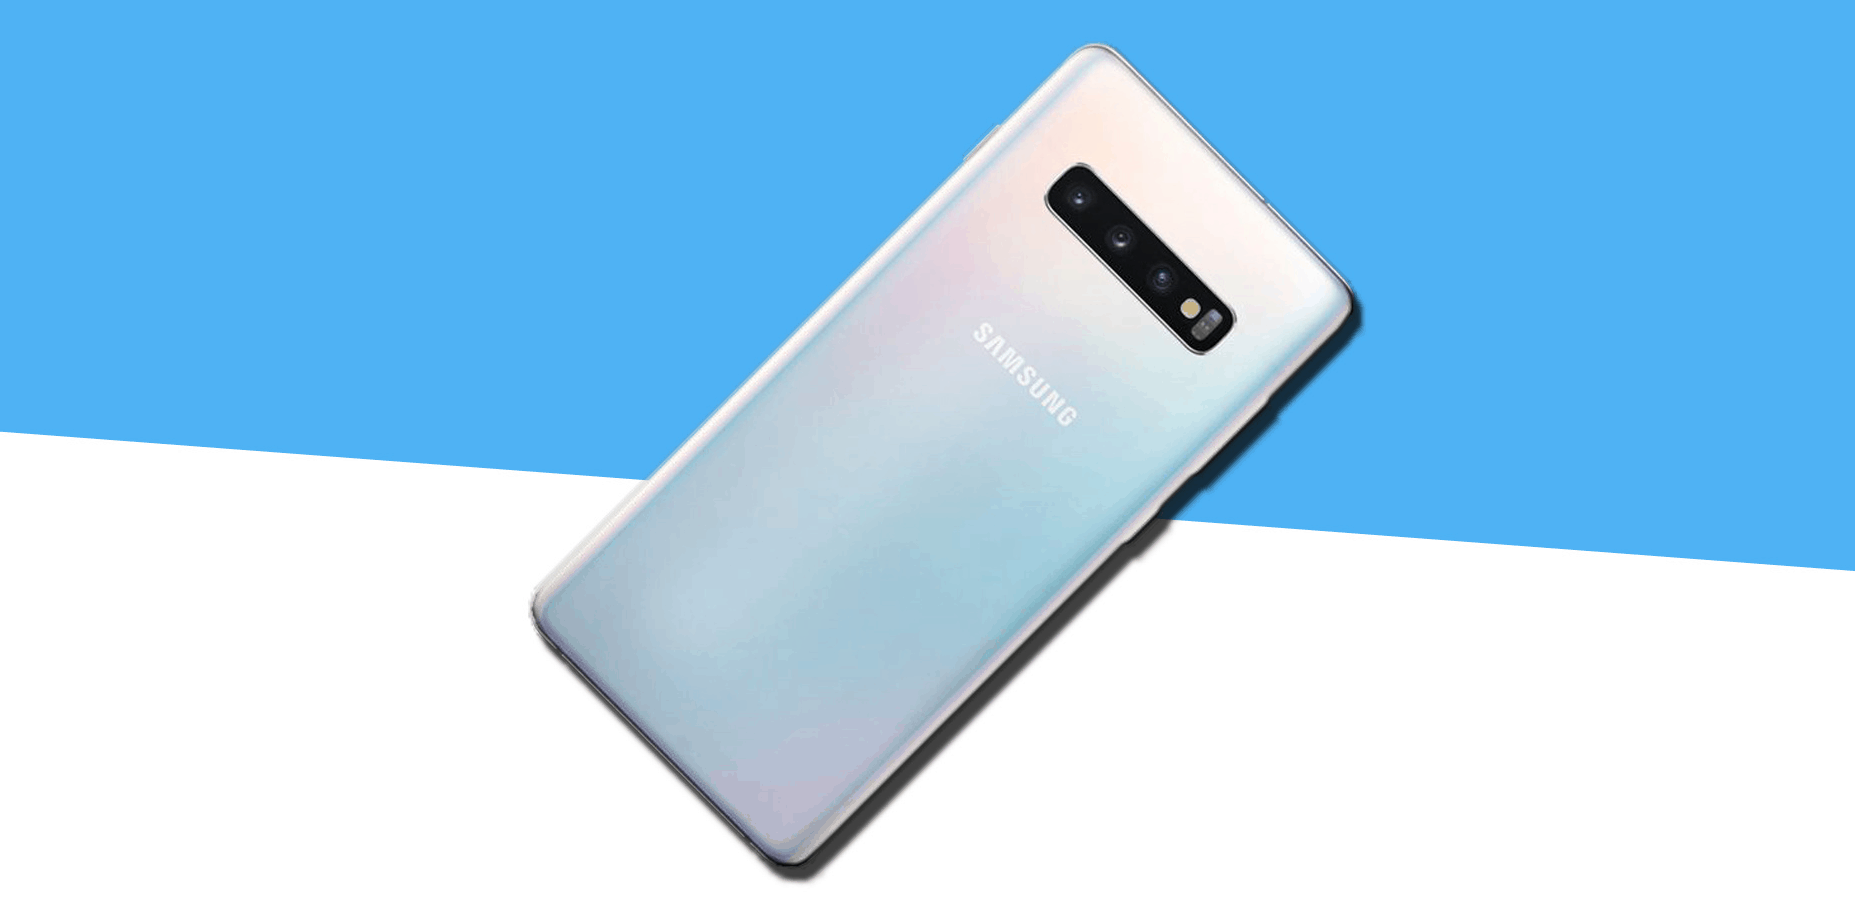 Samsung Galaxy S11 expected to come with Exynos 9830/Snaprdagon 865 & LPDDR5 RAM – But what about the Exynos 990?